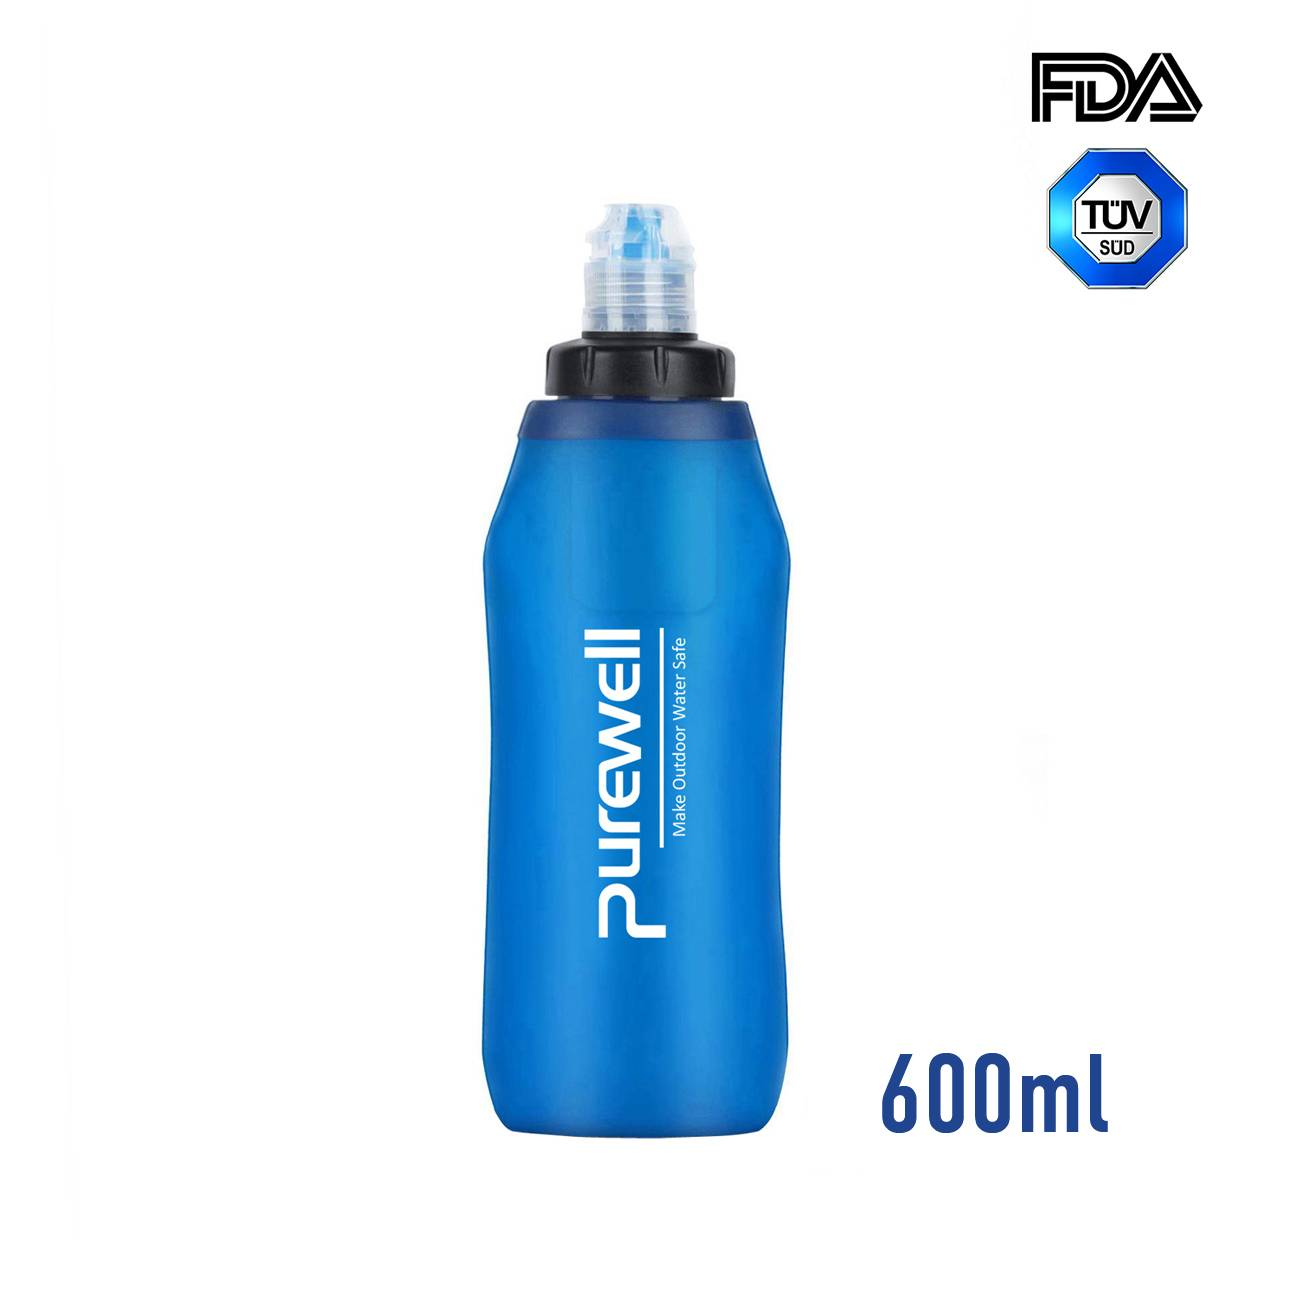 Purewell Outdoor Collapsible Soft Flask 600ml with Filter for Running, Travel, Backpacking K8630